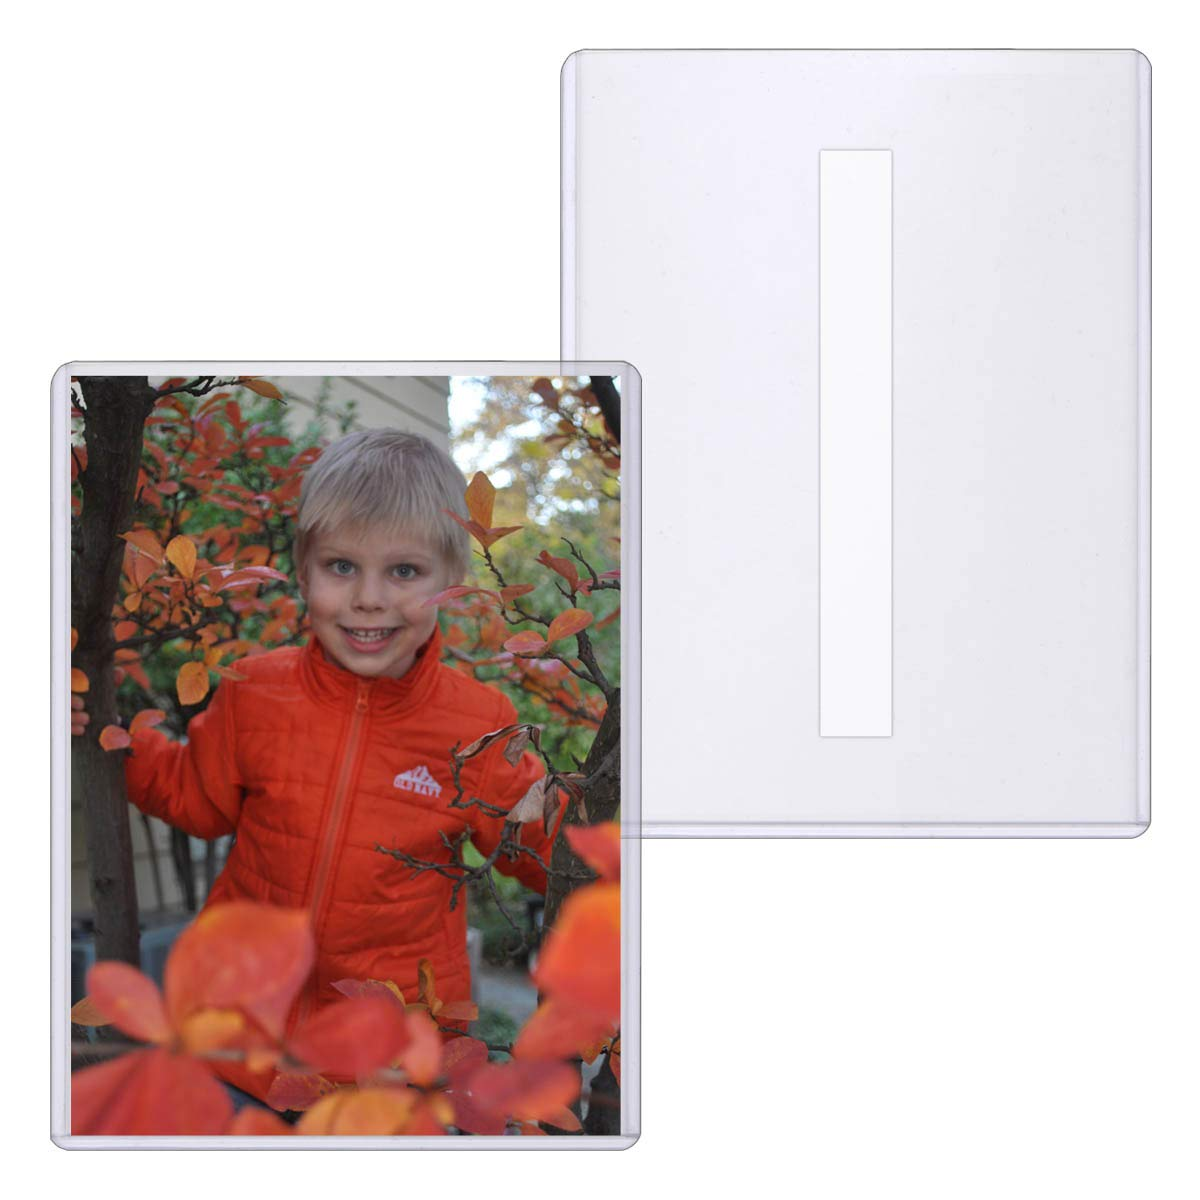 StoreSMART - Rigid Toploaders with Peel & Stick Back (Remove & Reuse) - 5'' x 7'' - Photo Size - 25-Pack - HPP5X7PSR-25